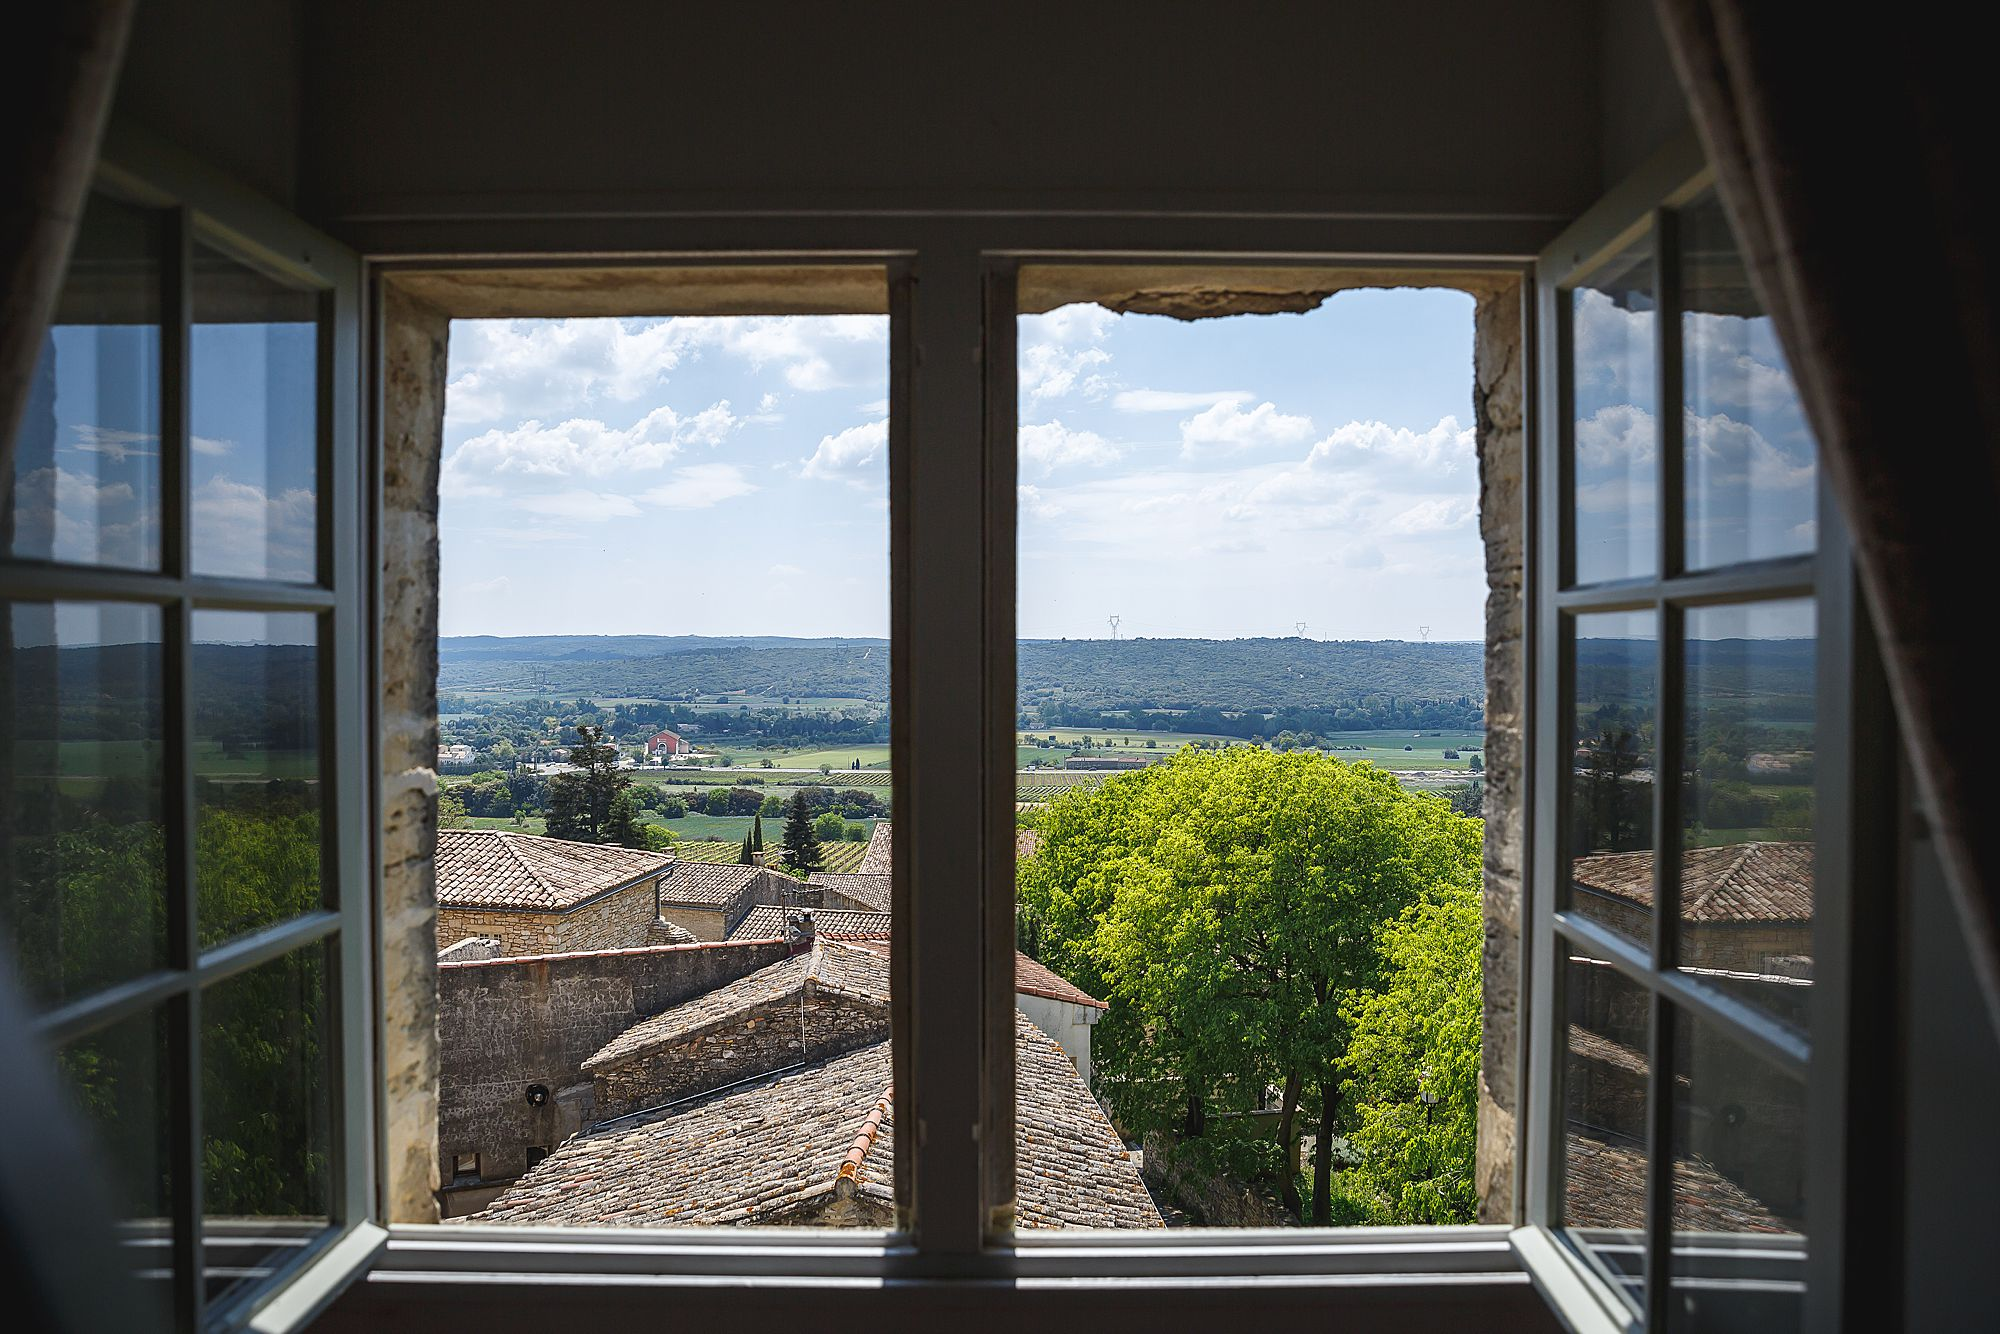 view from the windown at Chateau Provence